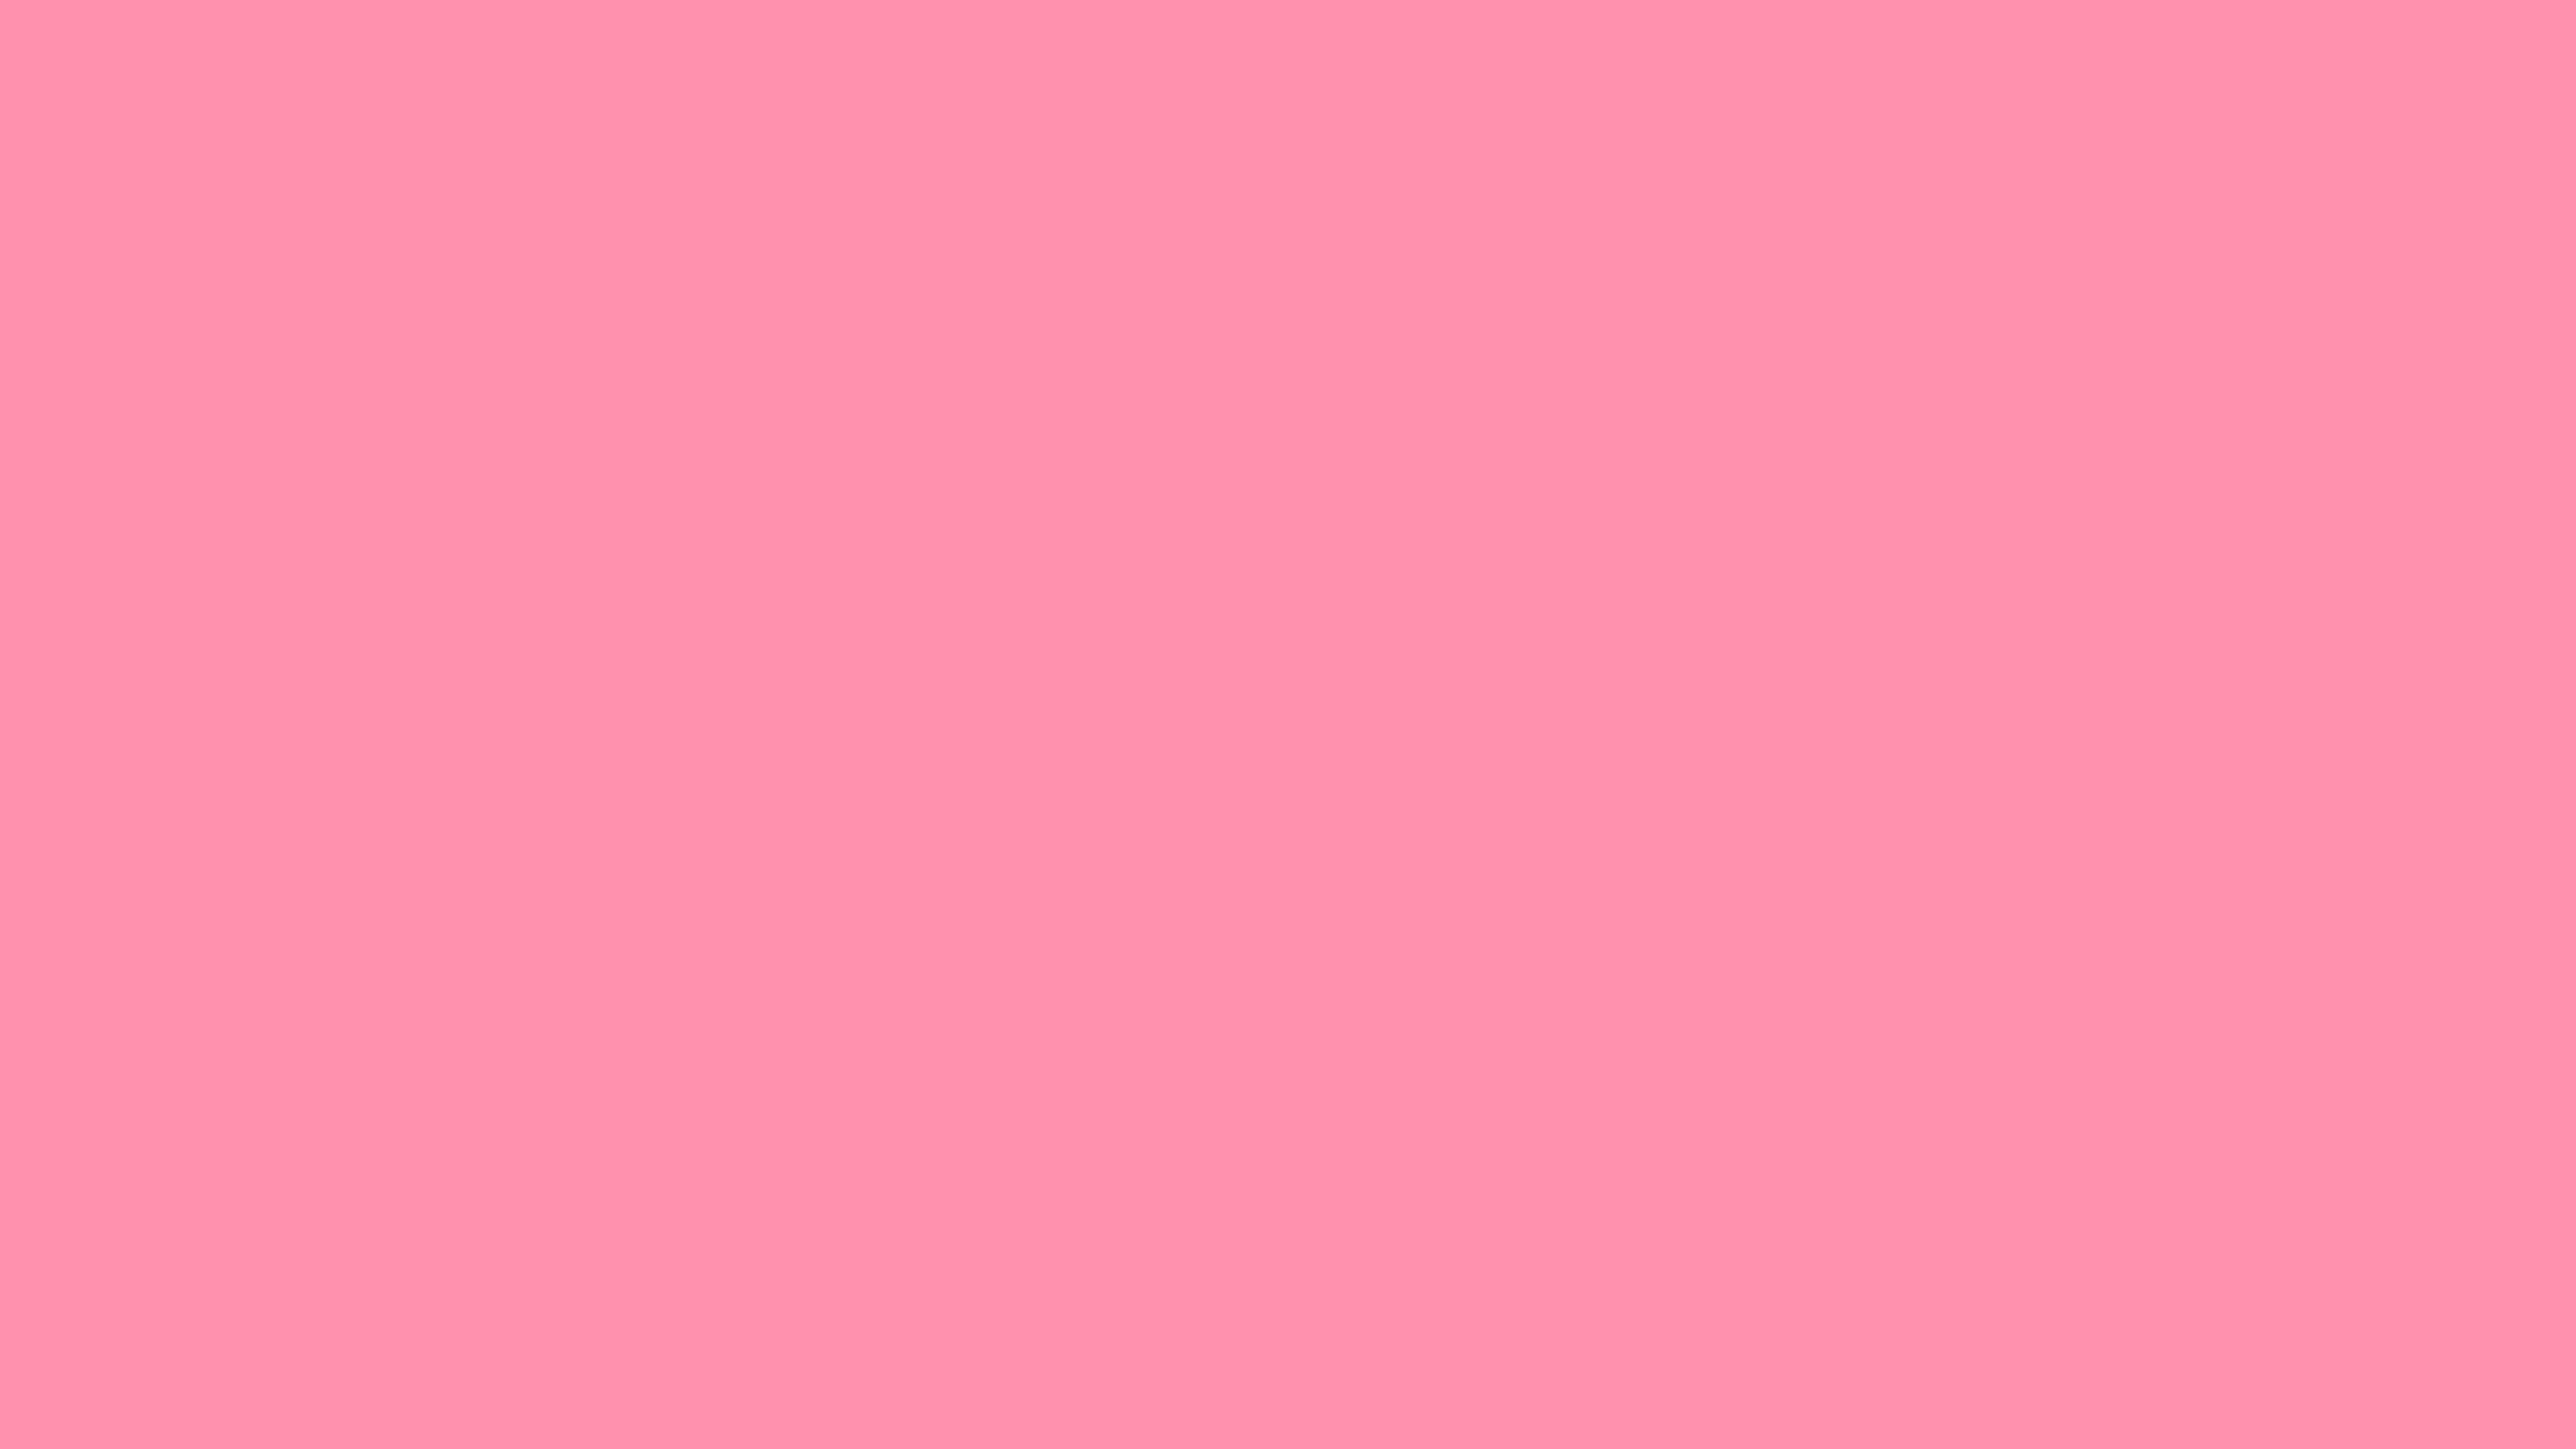 3840x2160 Baker-Miller Pink Solid Color Background